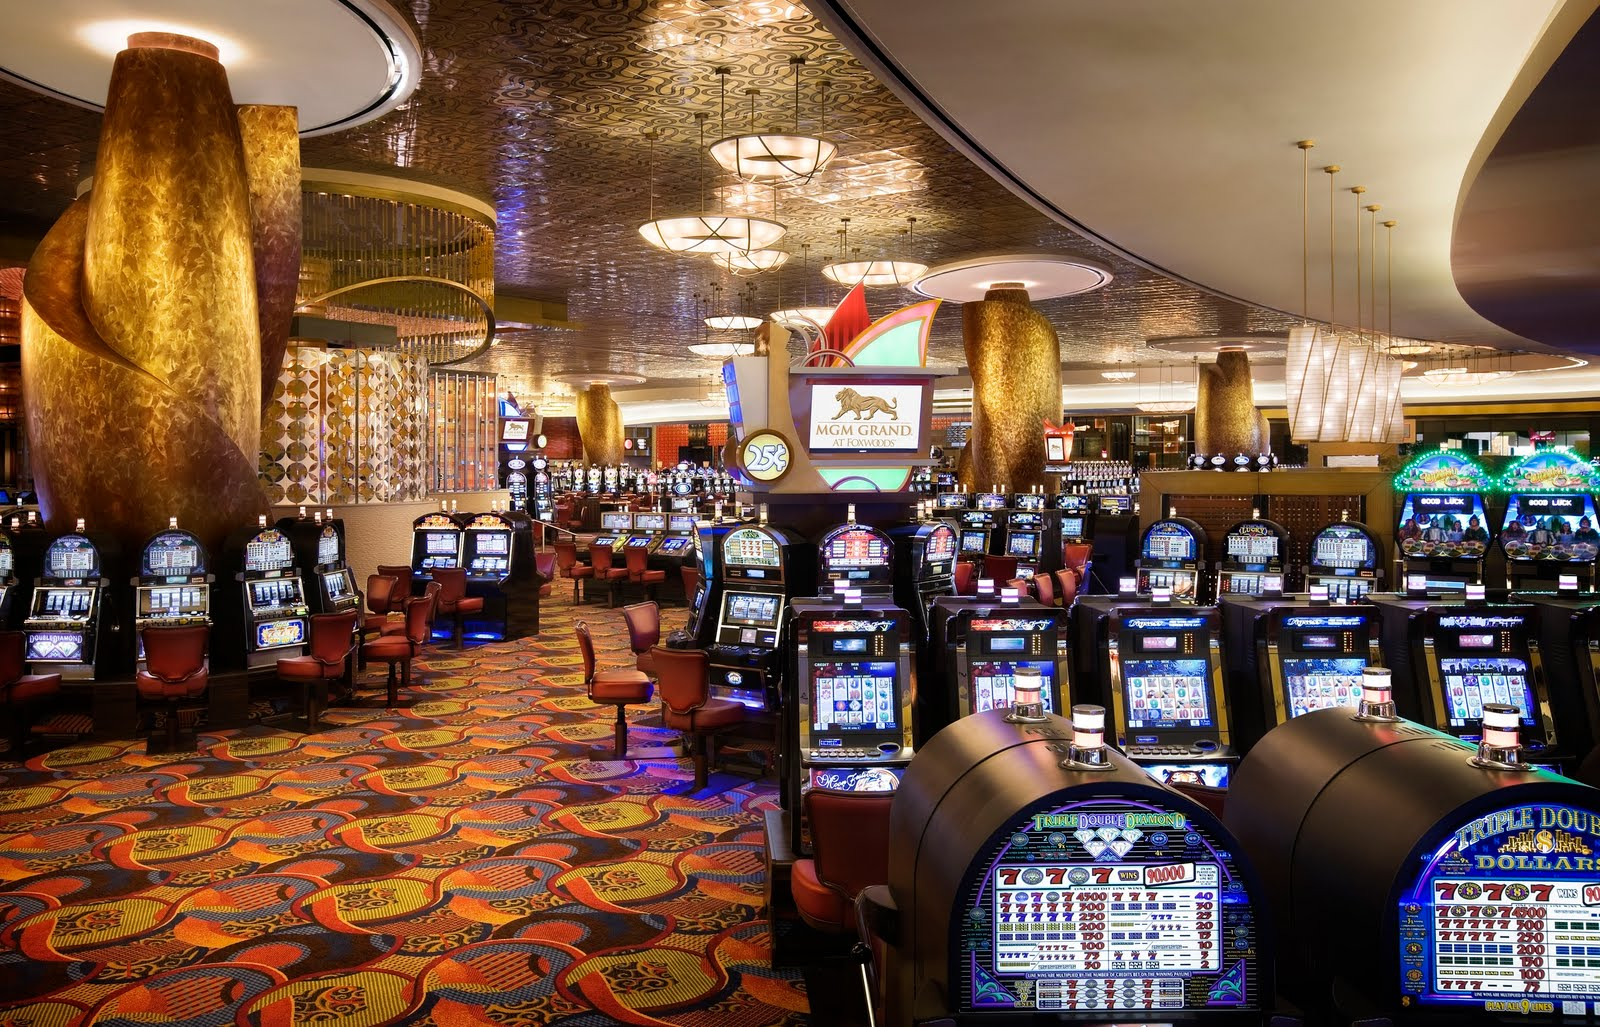 Lodging at foxwoods casino fun gambling games football